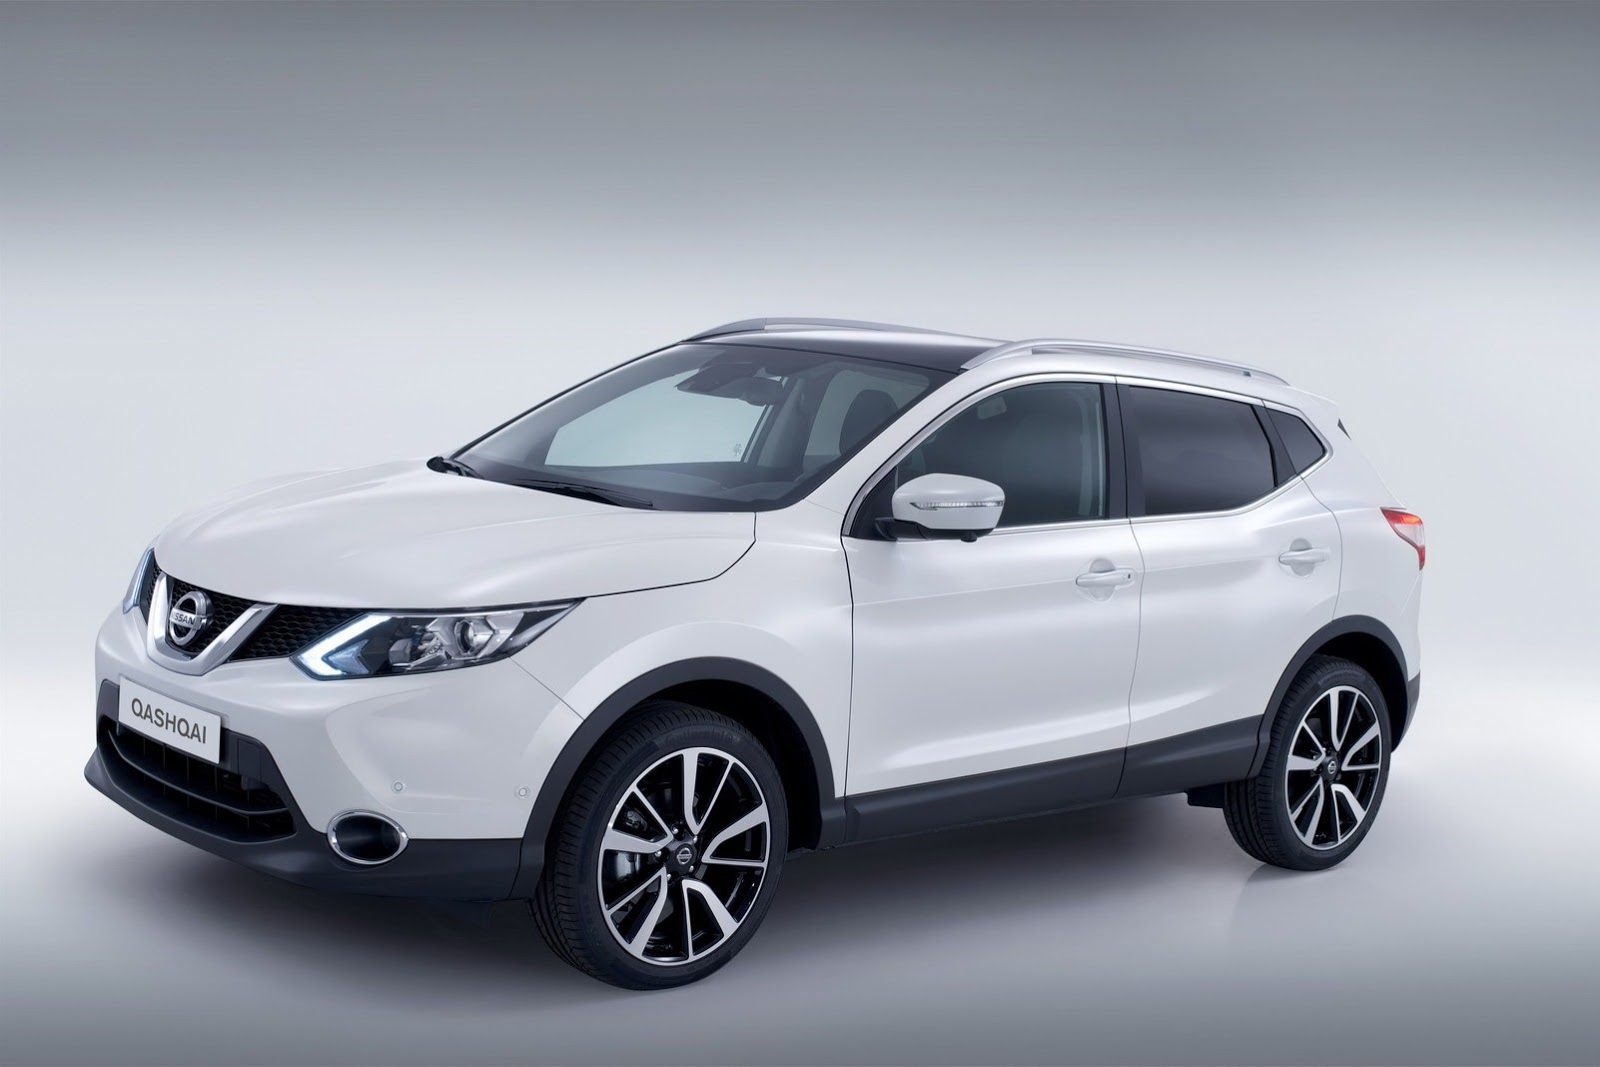 new nissan qashqai photo gallery car gallery suv crossovers autocar india. Black Bedroom Furniture Sets. Home Design Ideas